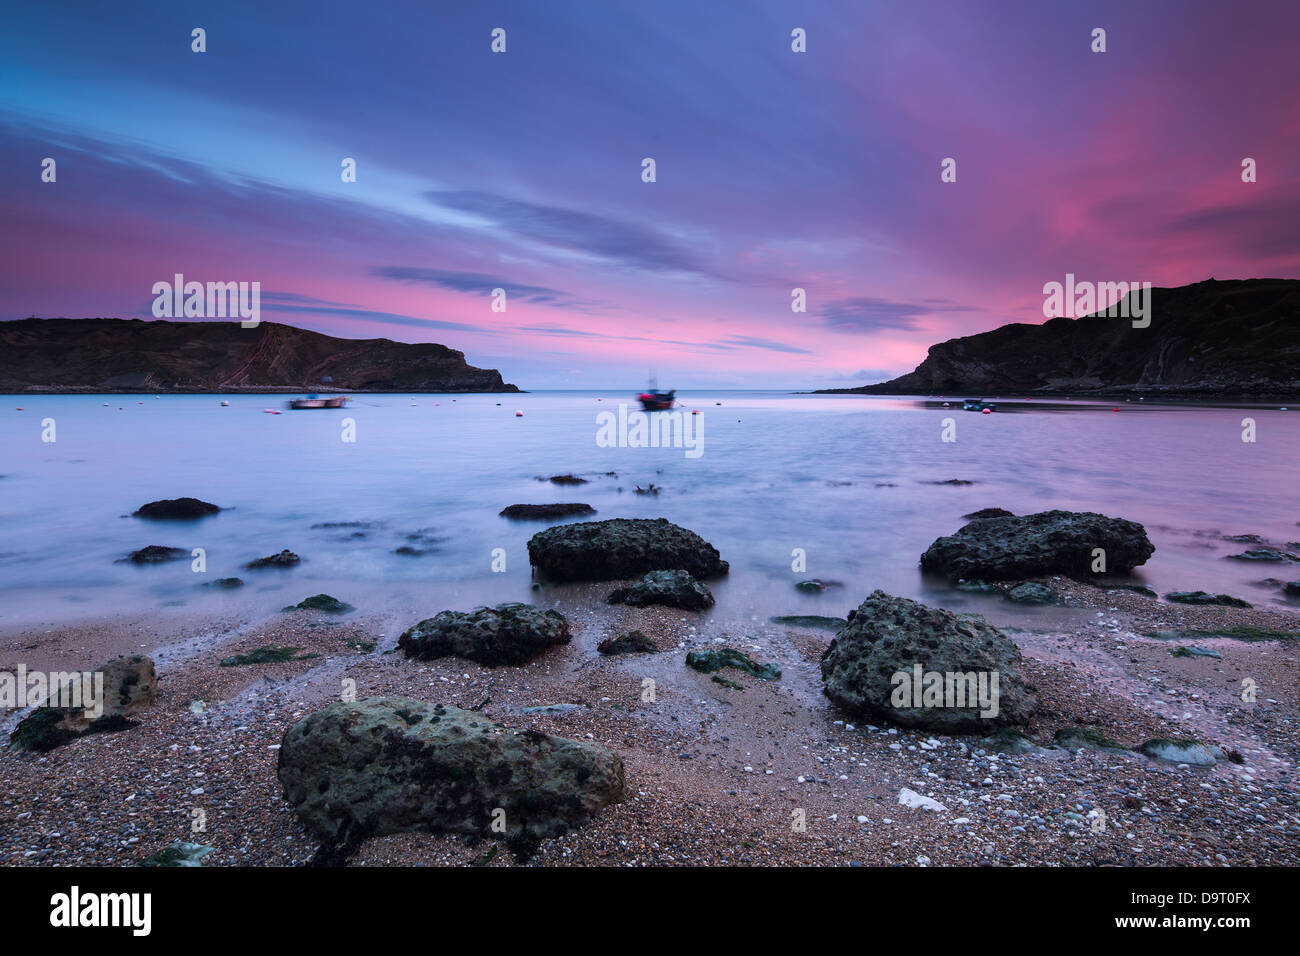 Lulworth Cove, Jurassic Coast, Dorset, England, UK - Stock Image